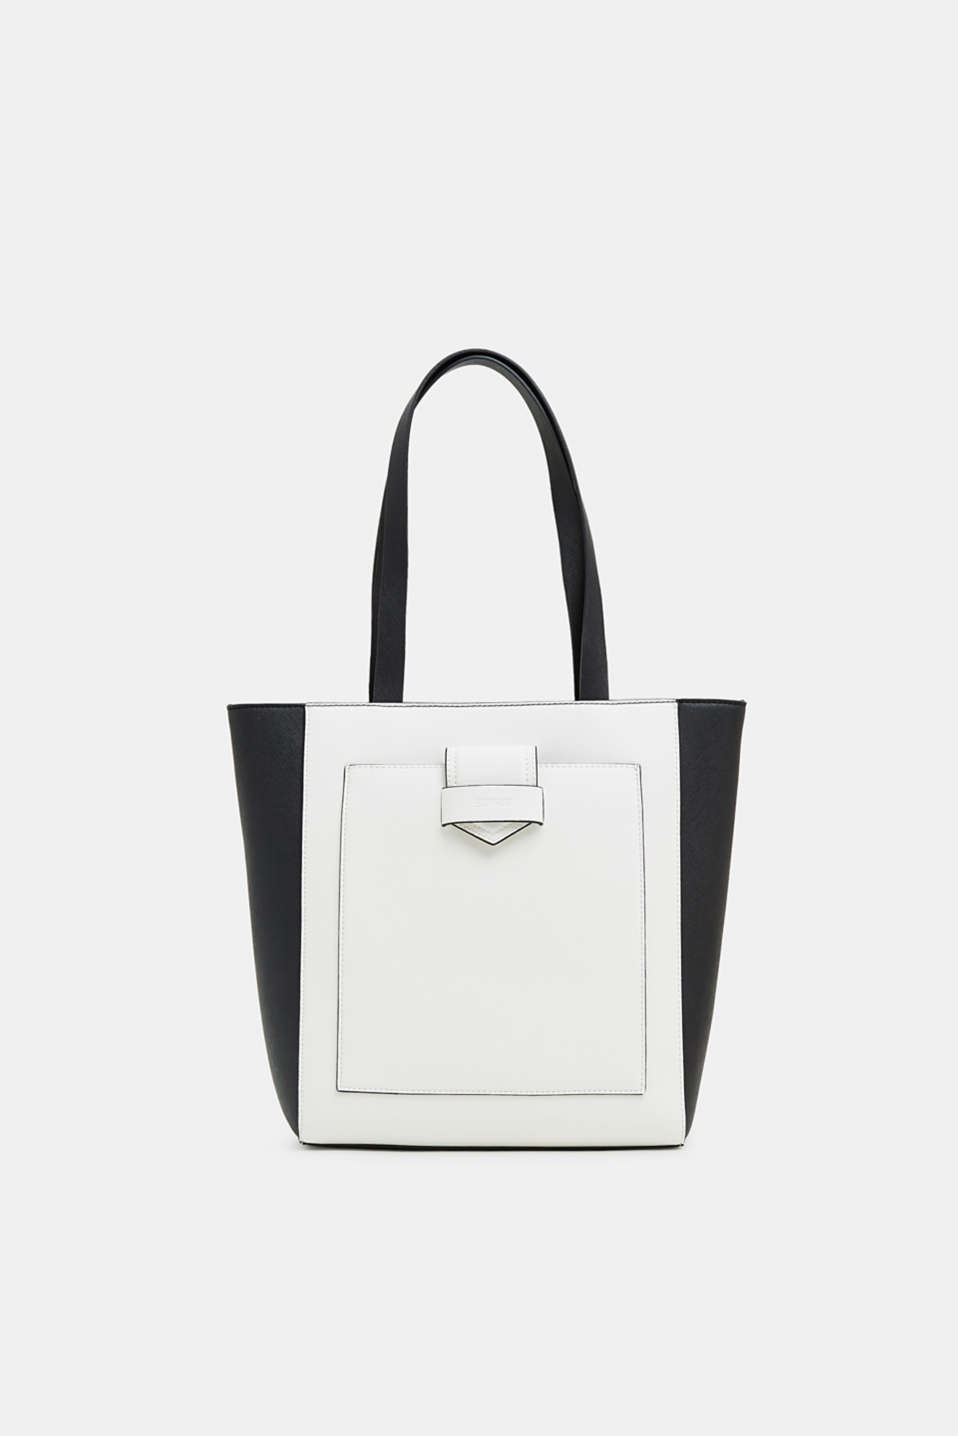 Esprit - Saffiano shopper in a monochrome look